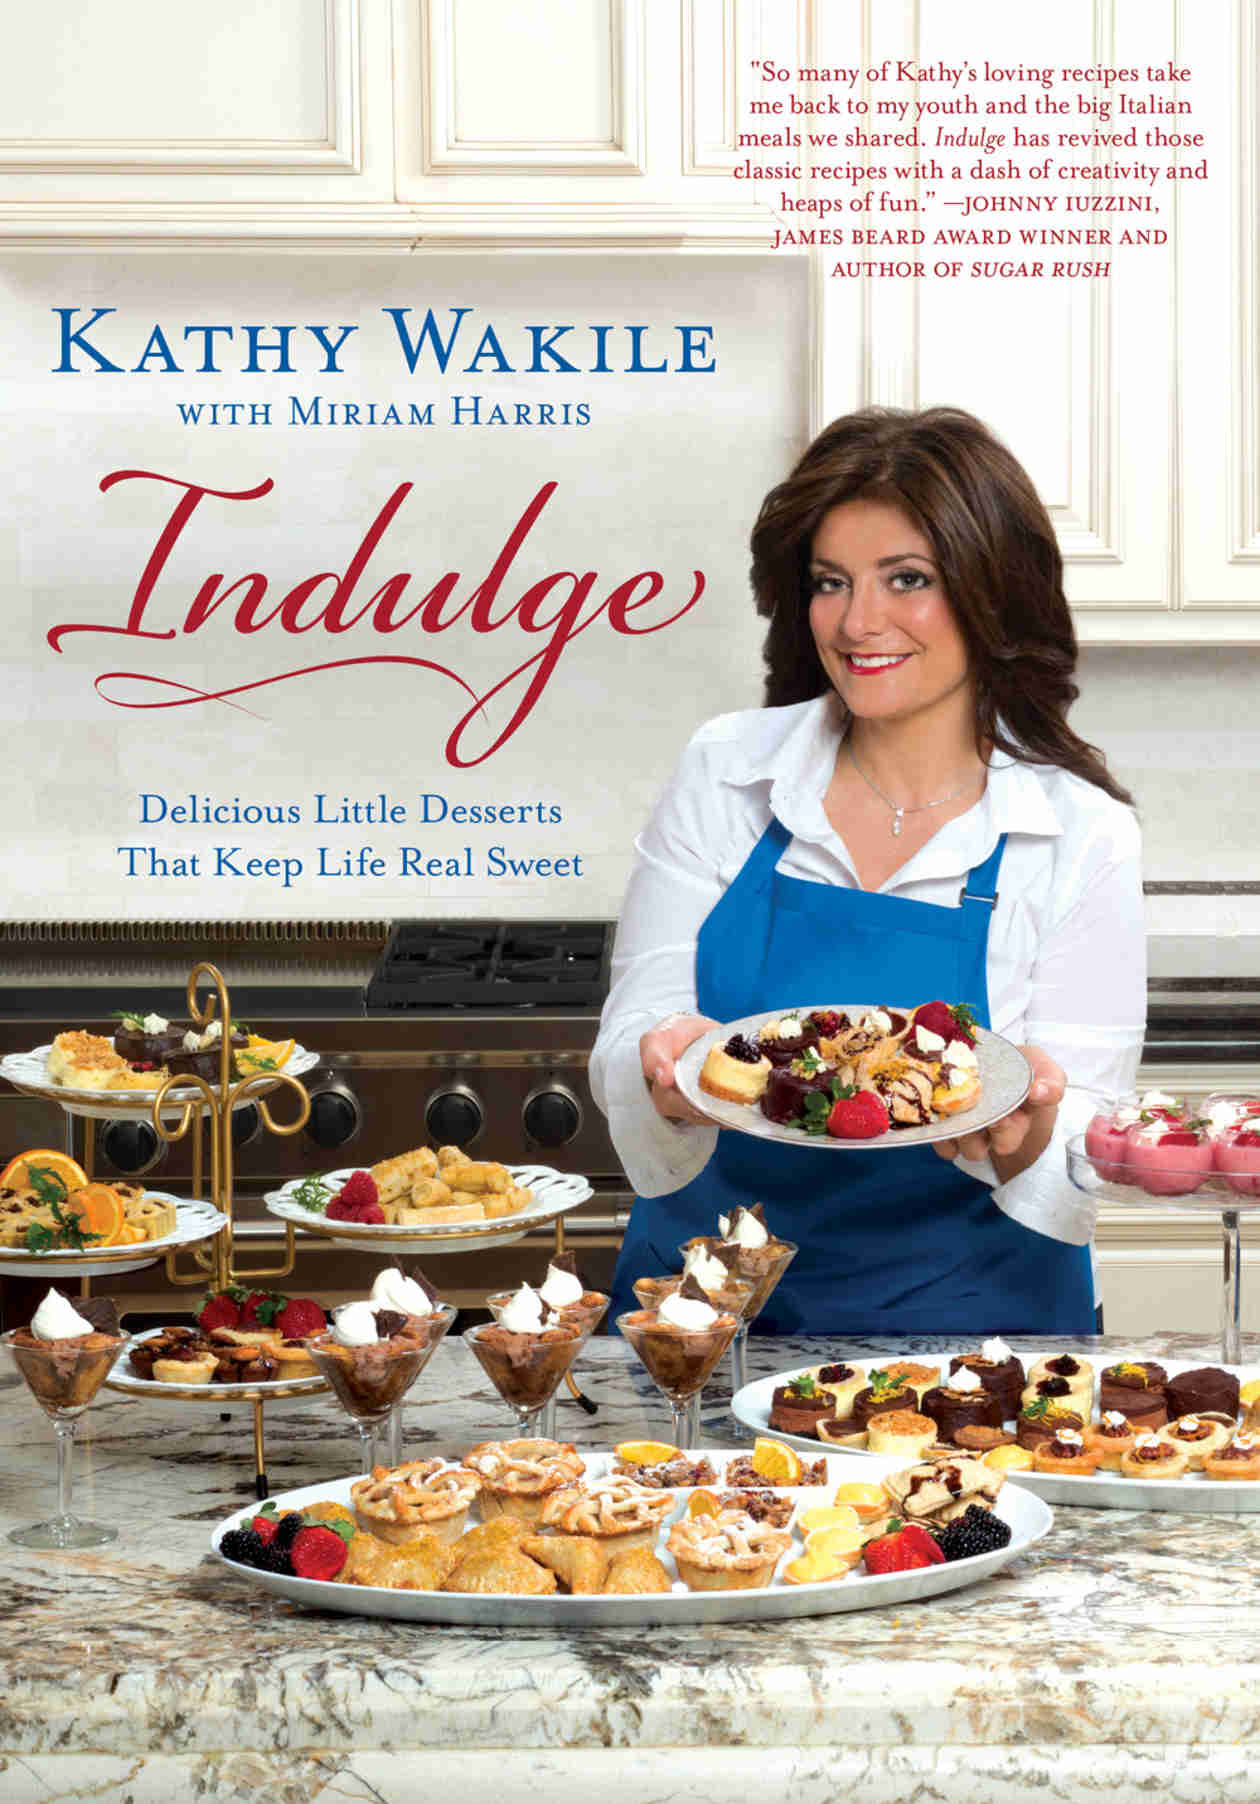 Kathy Wakile's Cookbook Is Out — Which RHONJ Stars Congratulated Her? (VIDEO)